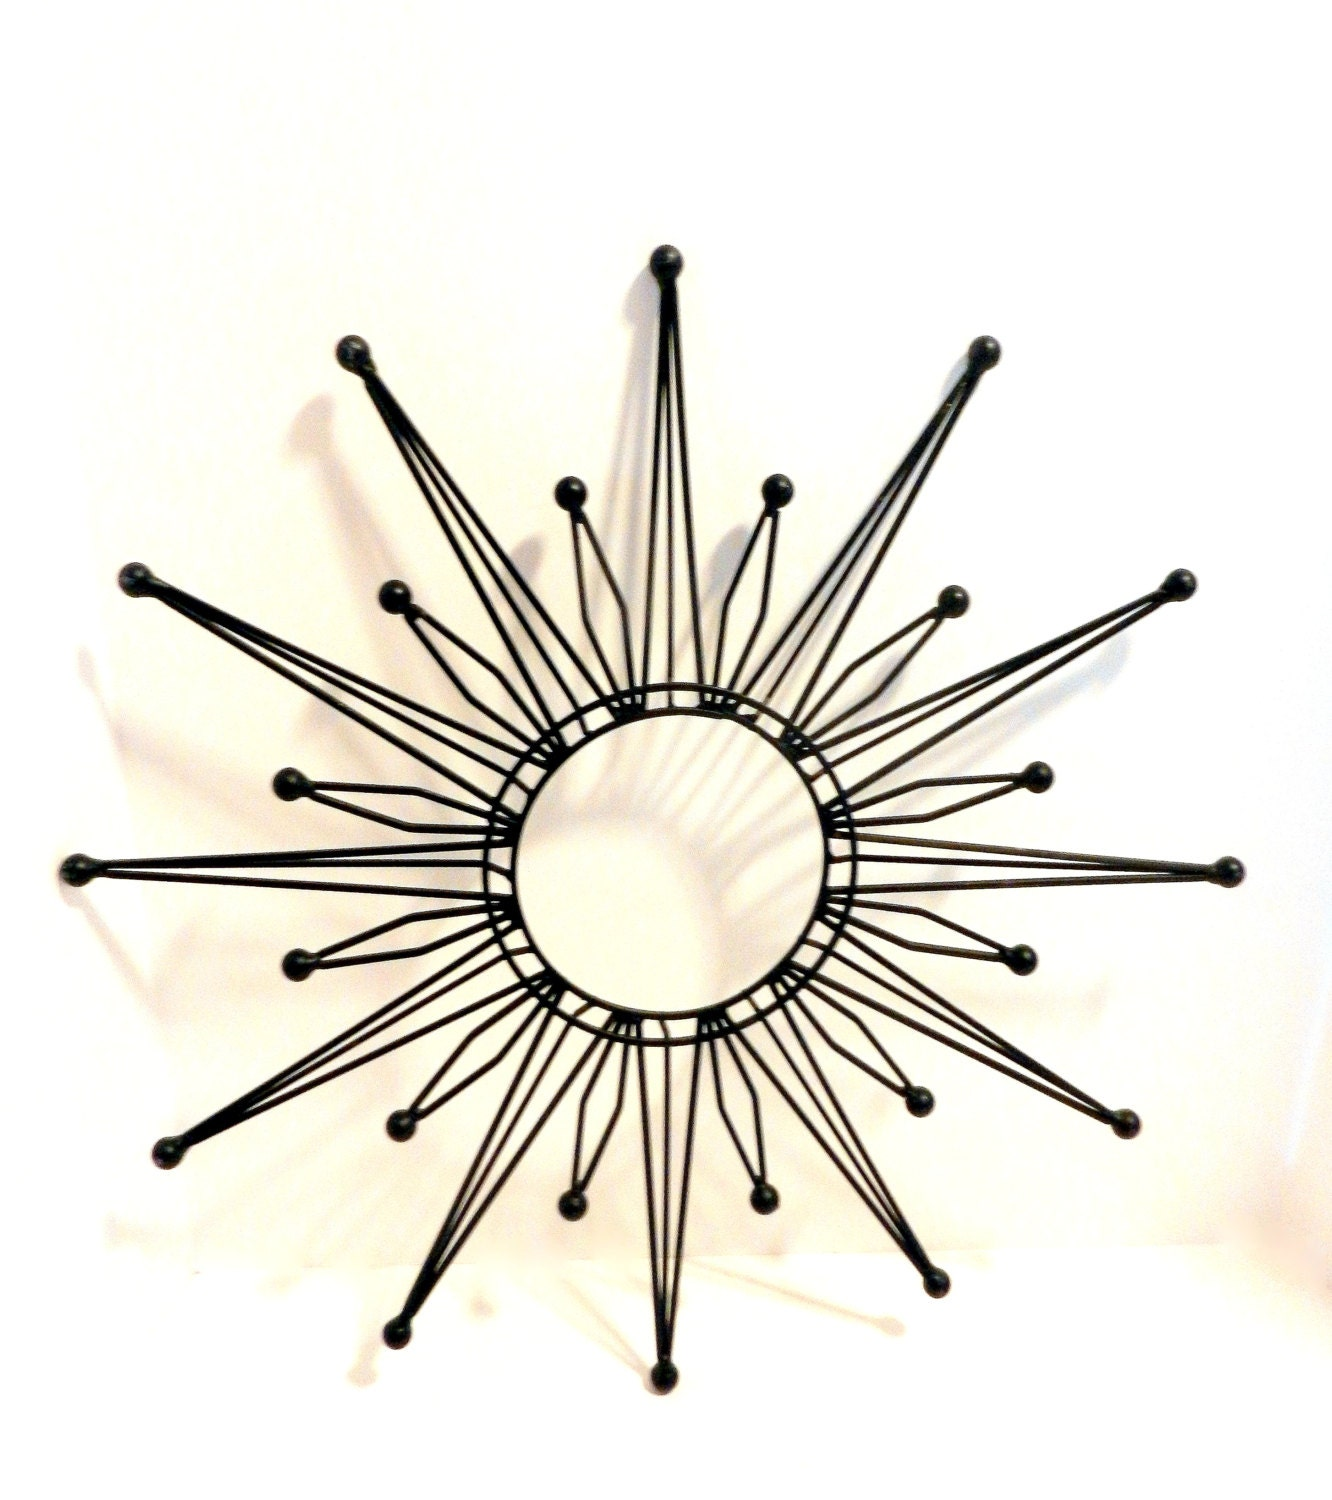 Retro Starburst Wall Decor : Starburst modern metal wall art mirrors clock mod retro